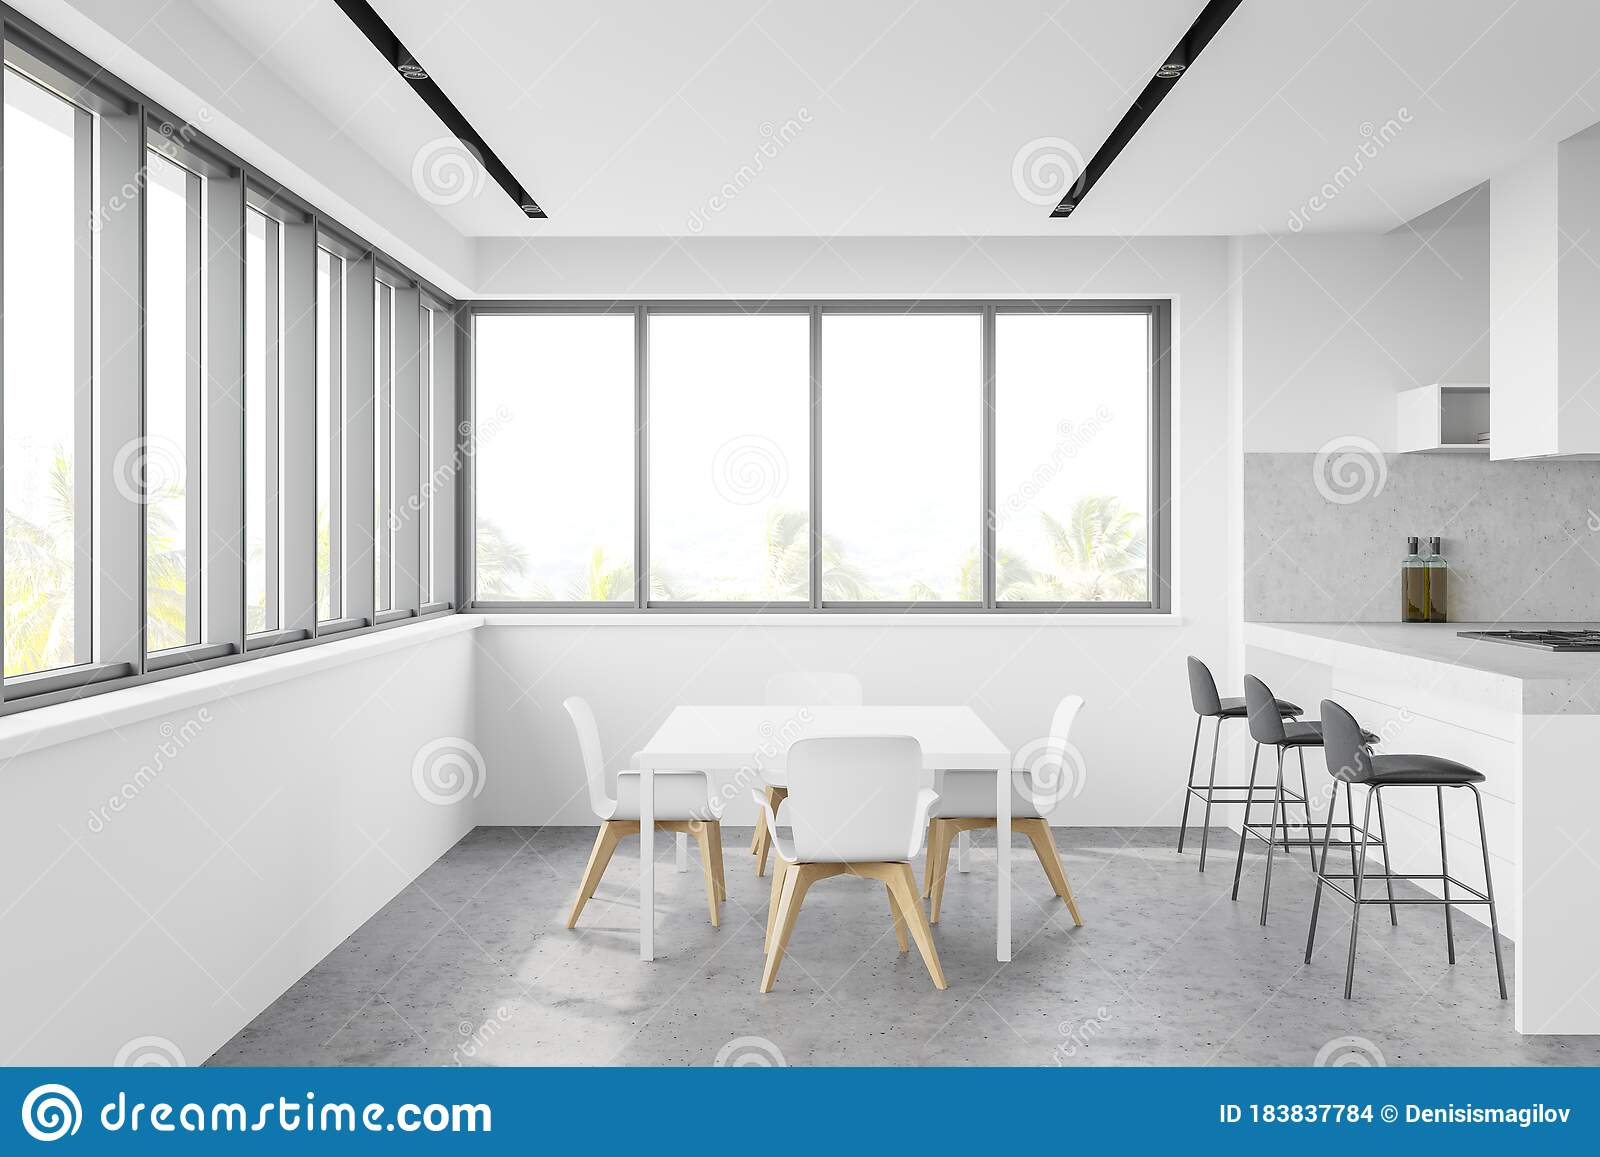 Panoramic White Kitchen With Bar And Table Stock Illustration Illustration Of Island Comfortable 183837784